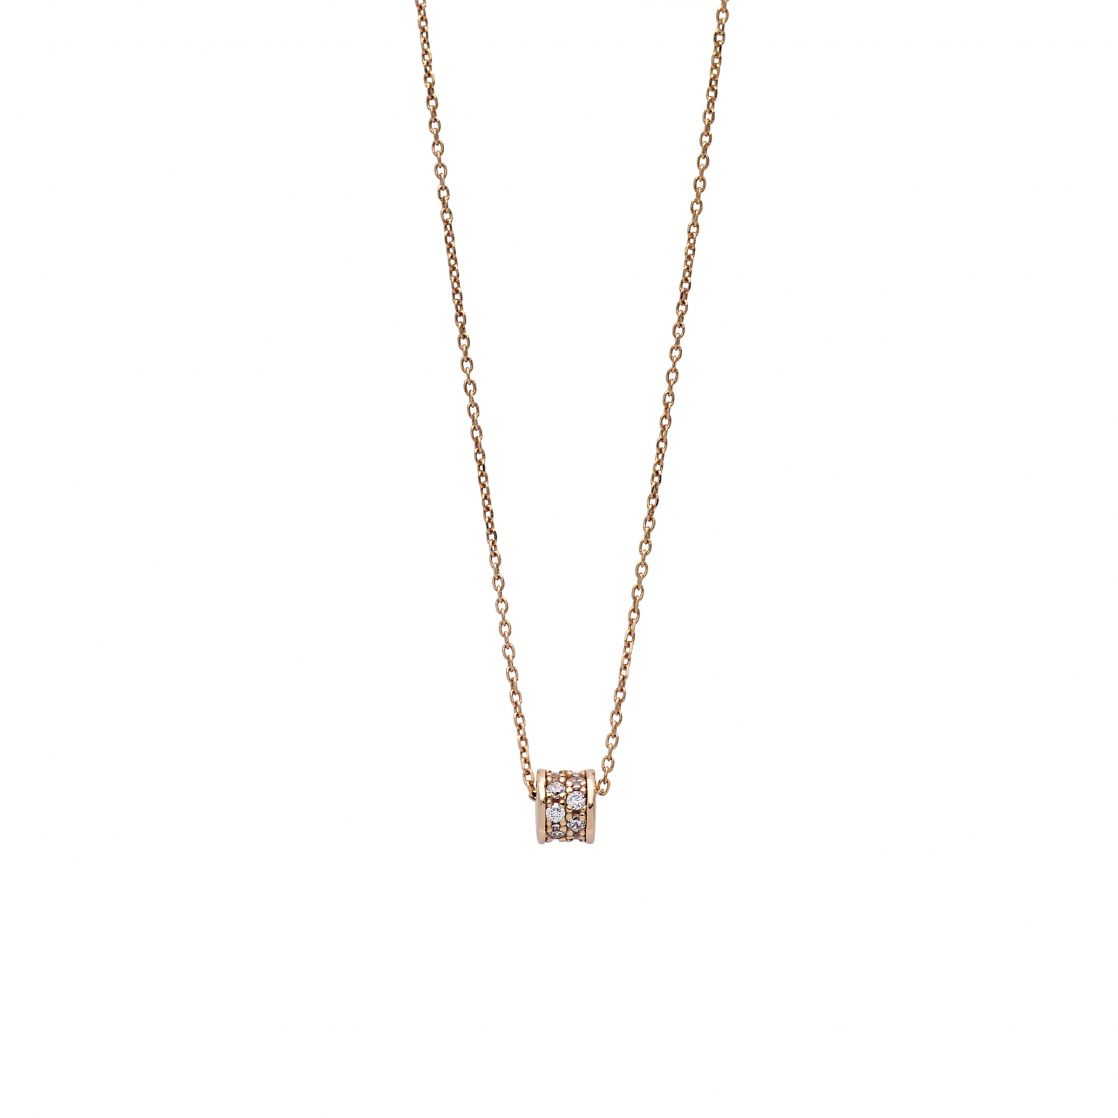 NECKLACE ROSE GOLD PLATED WITH PAVÈ